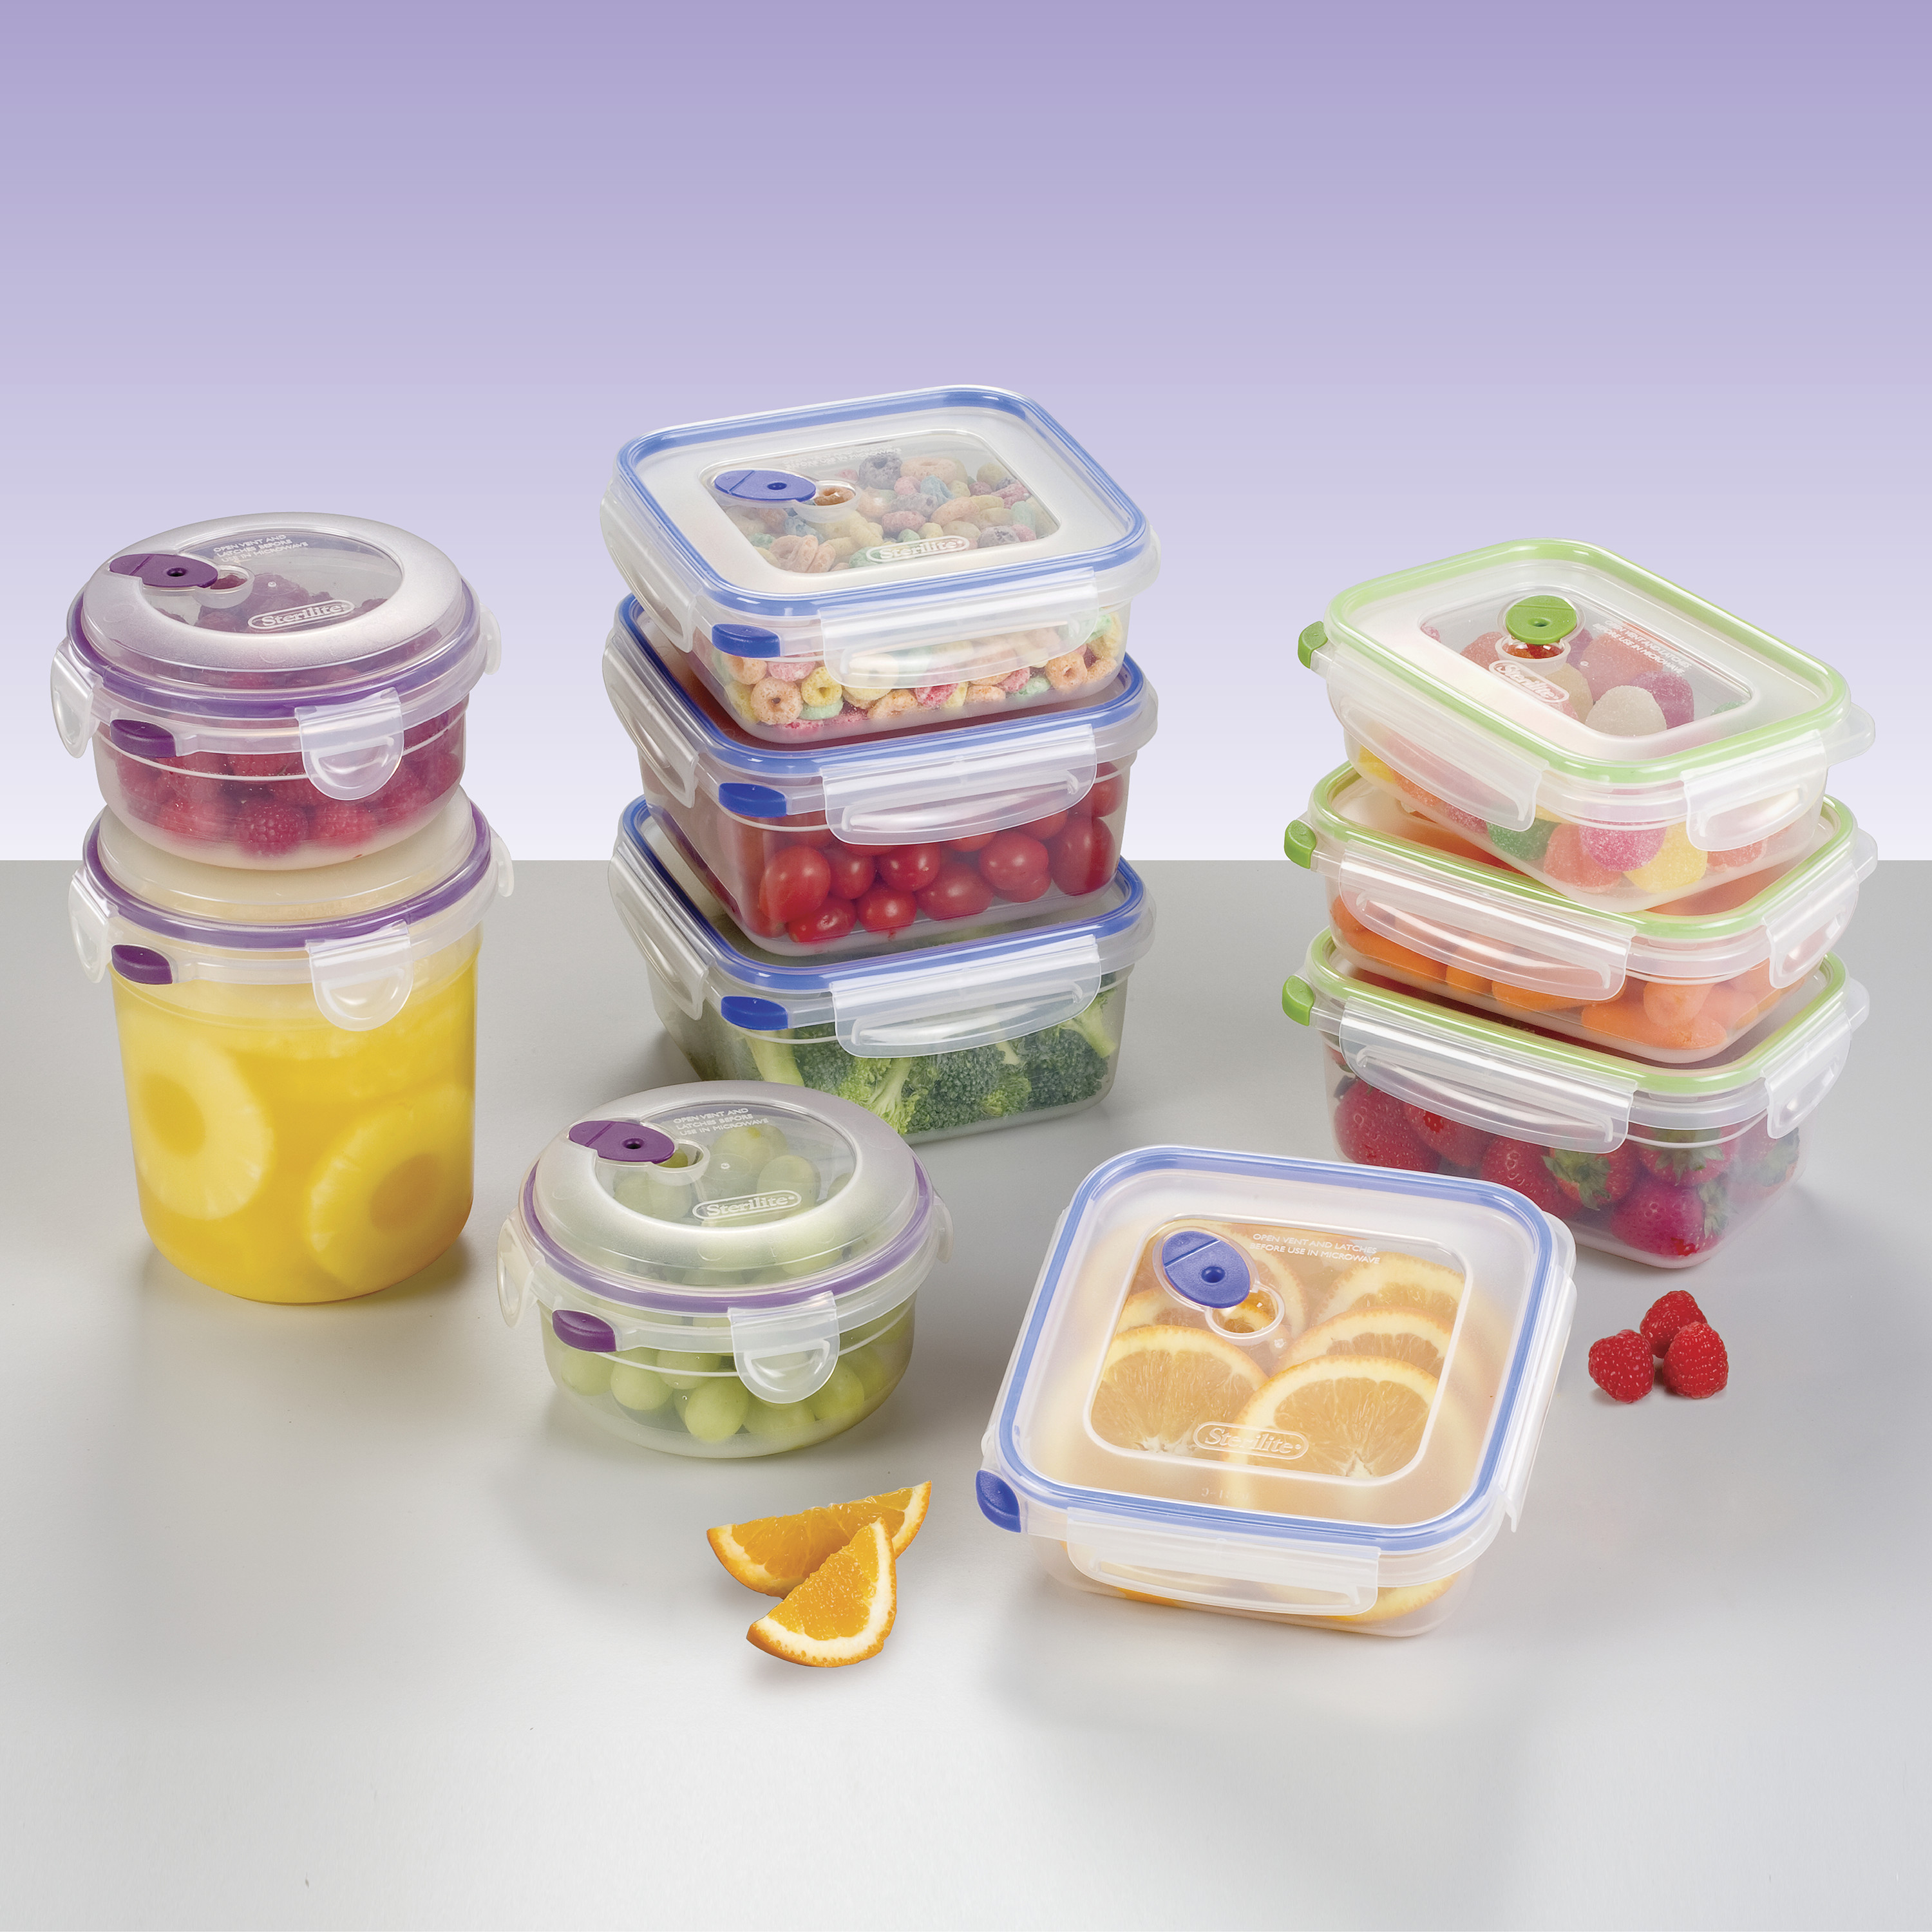 Sterilite 20-Piece Storage Set...